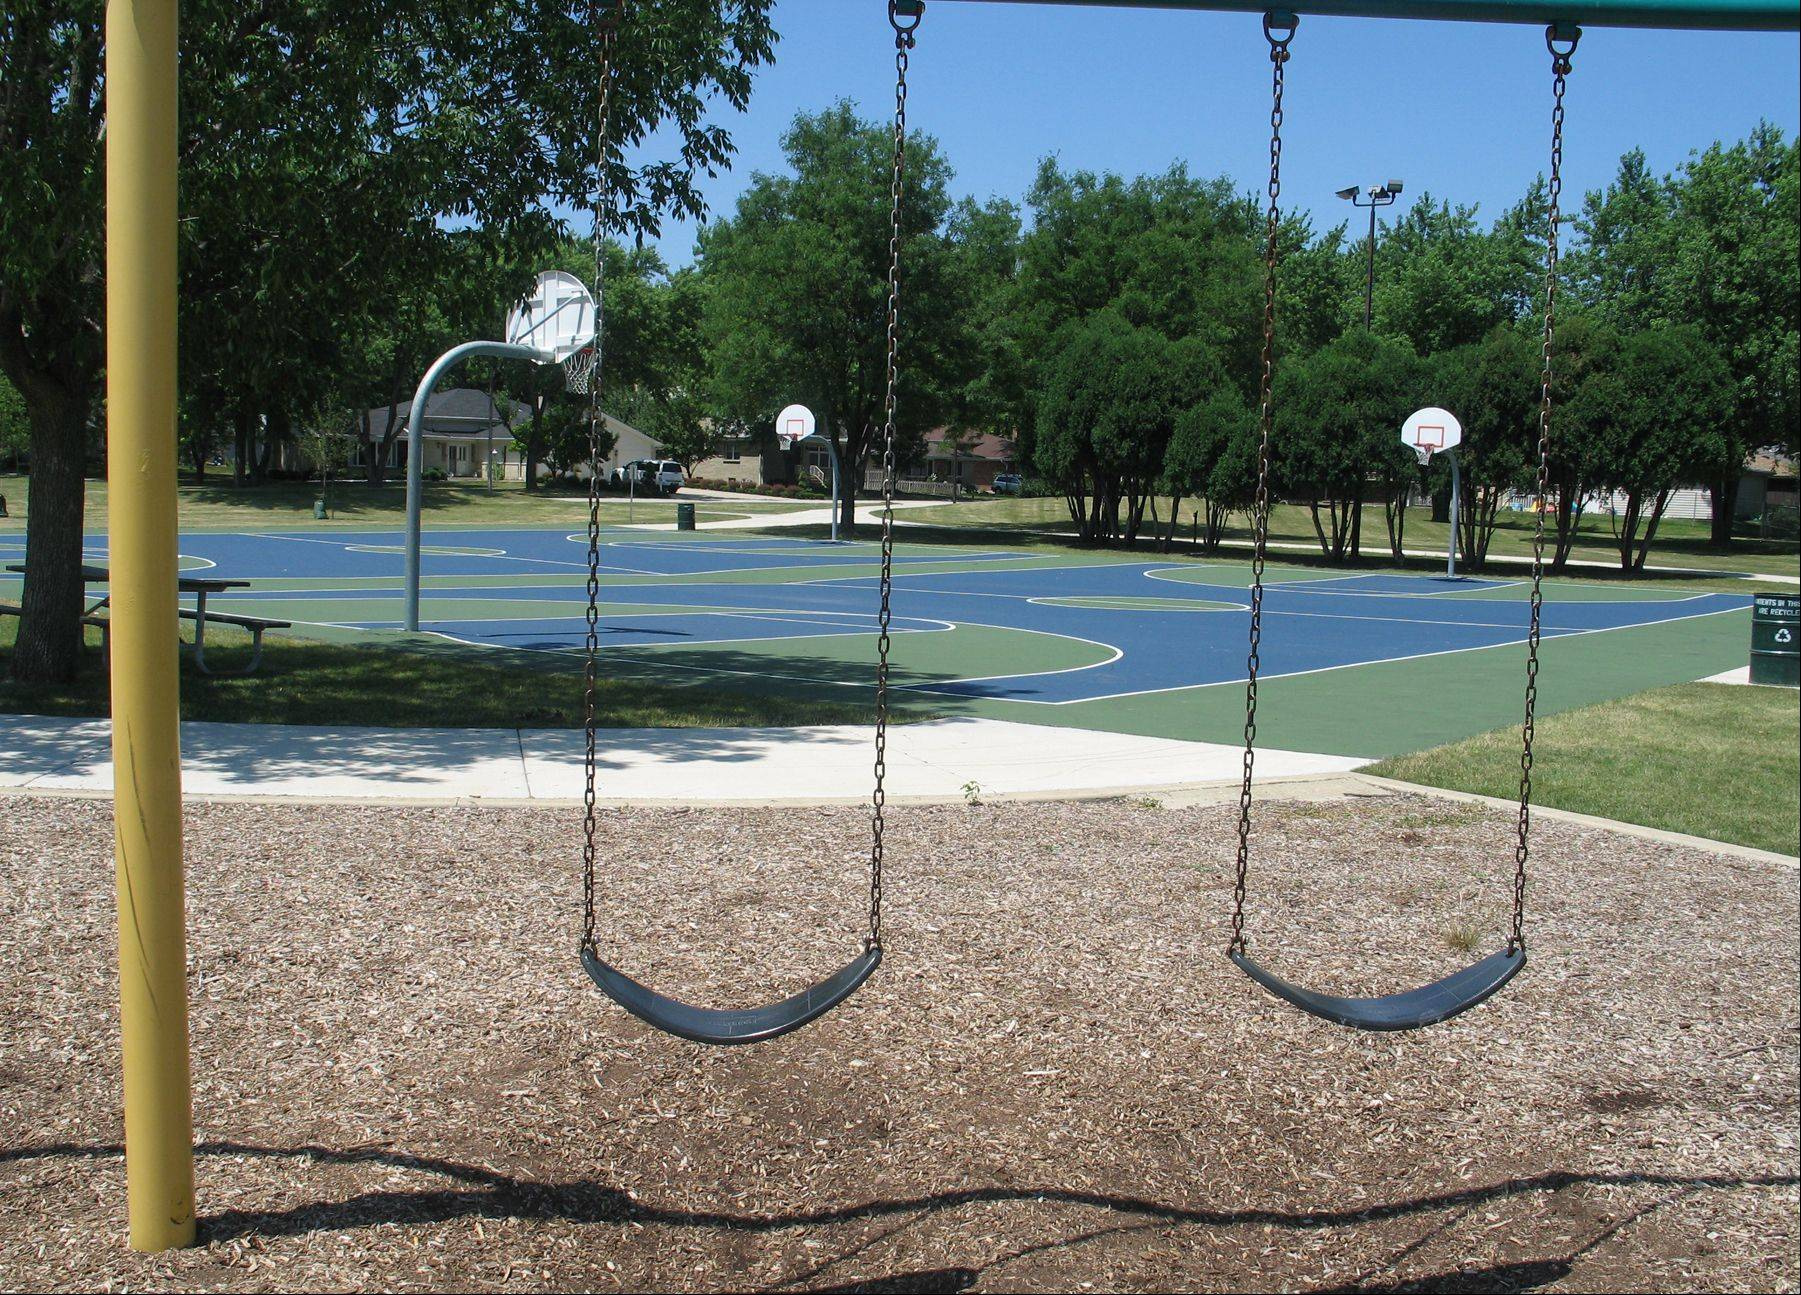 Even on the many perfect summer days this month, kids playing by themselves are an endangered species in the suburbs. These empty swings and basketball courts of Carefree Park in Arlington Heights are typical.